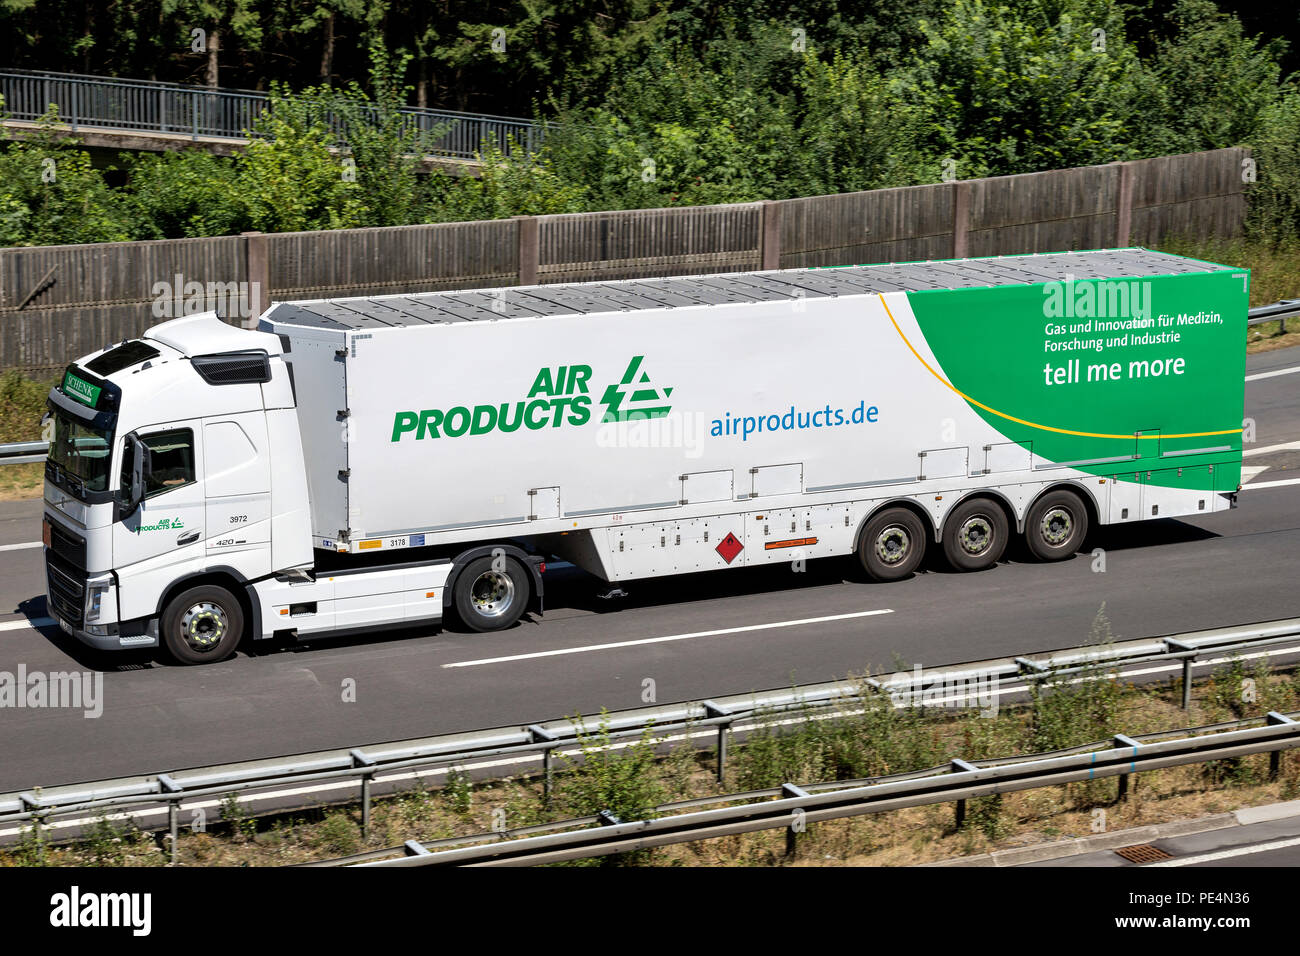 Air Products truck on motorway. Air Products is an American international corporation whose principal business is selling gases and chemicals. - Stock Image